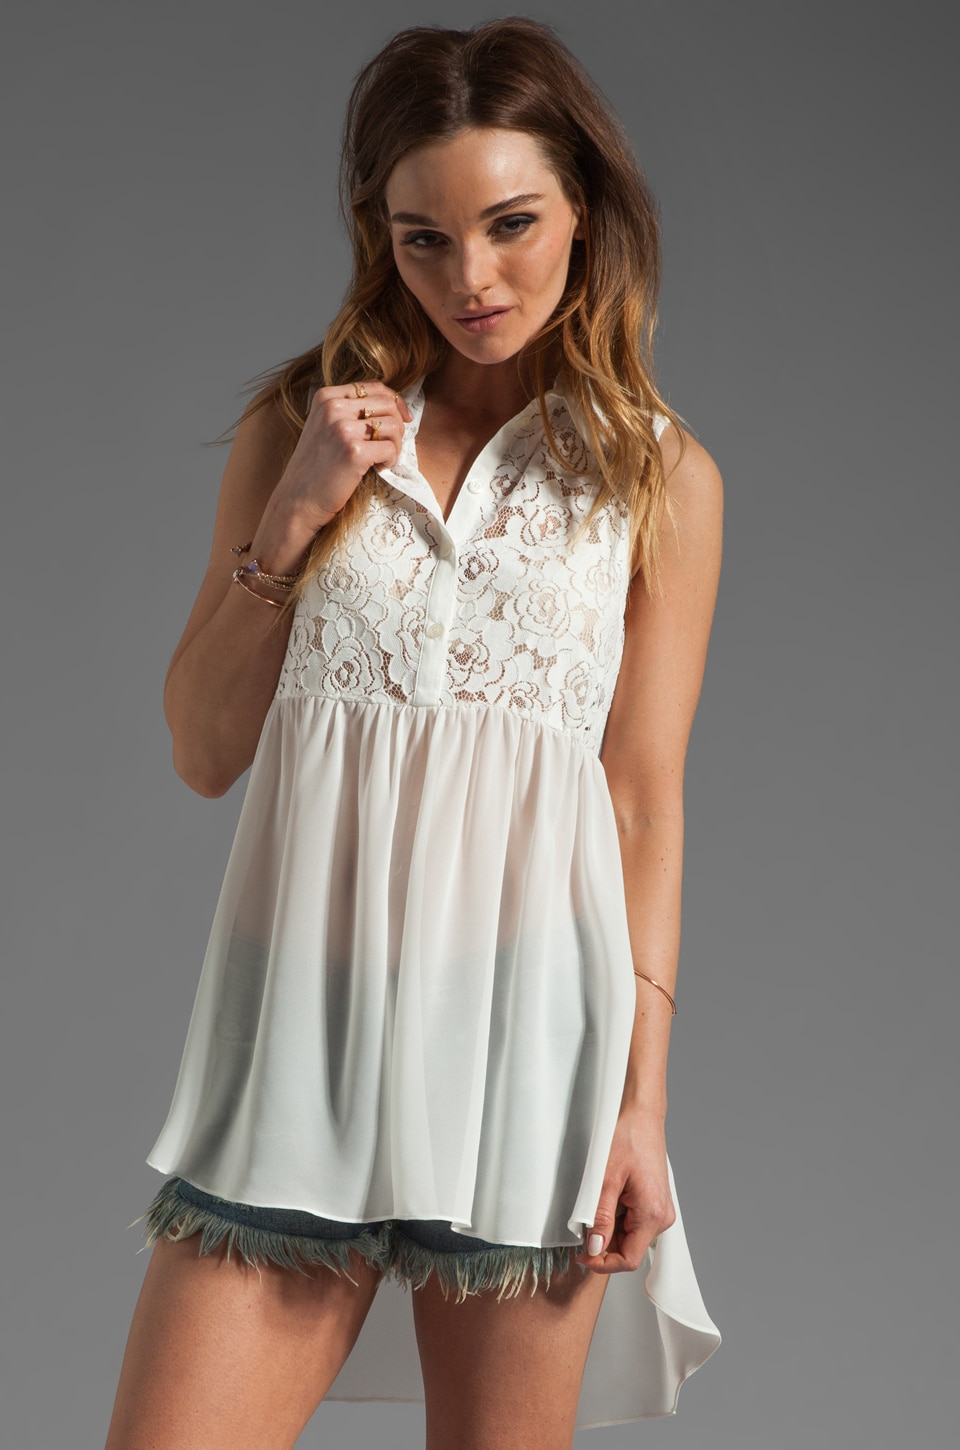 Pencey Open Back Tunic in White